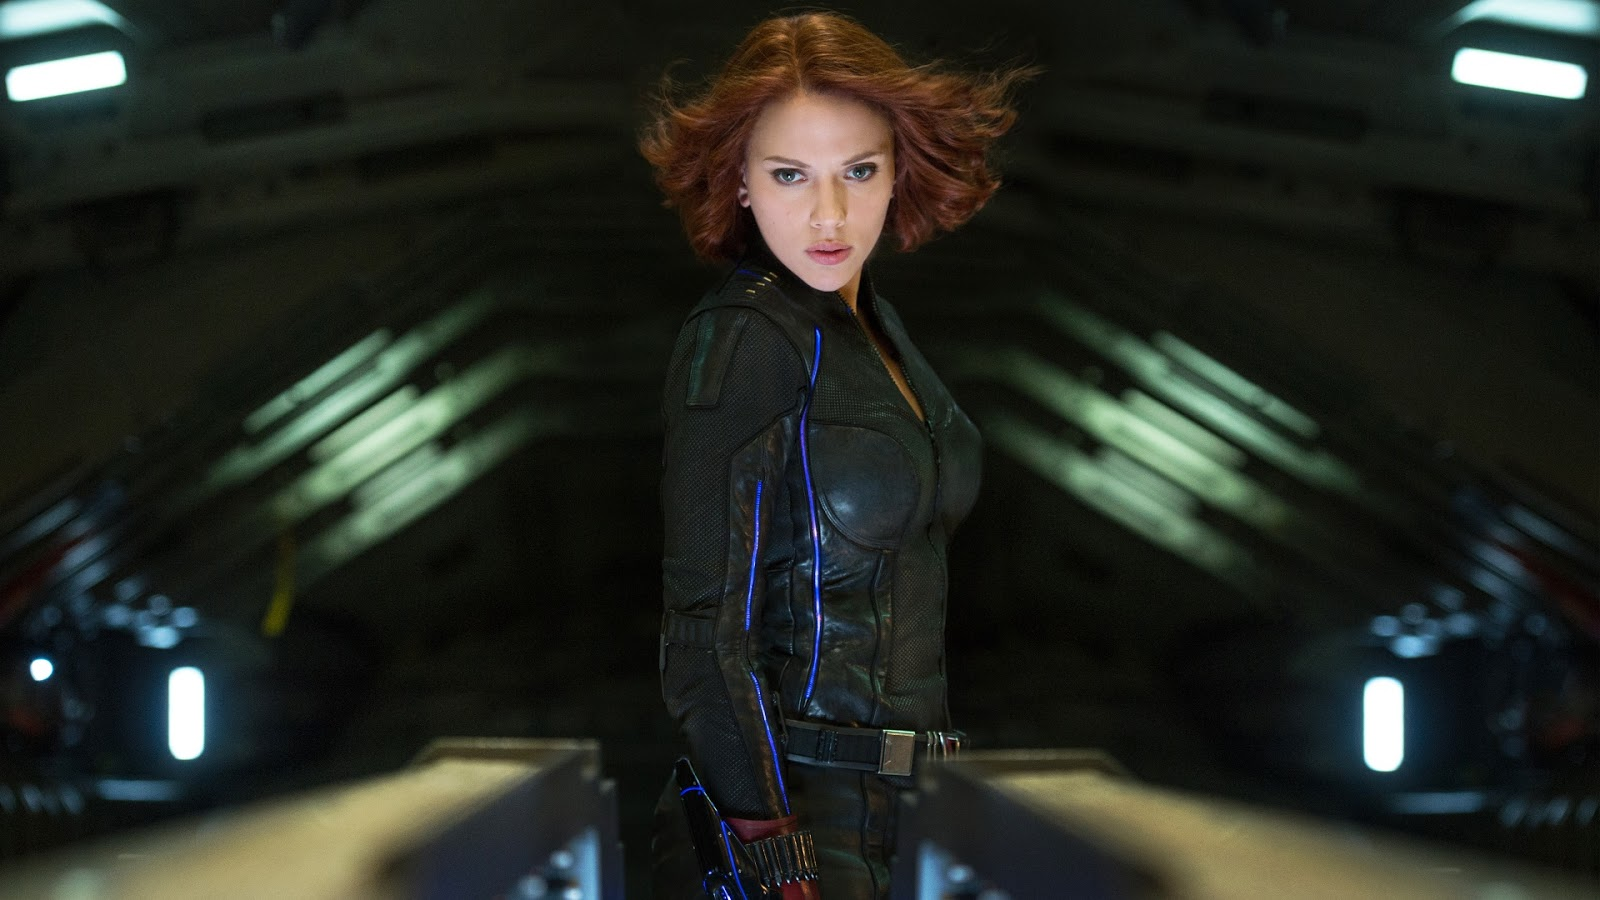 Scarlett Johansson in Movie The Avengers HD Wallpaper